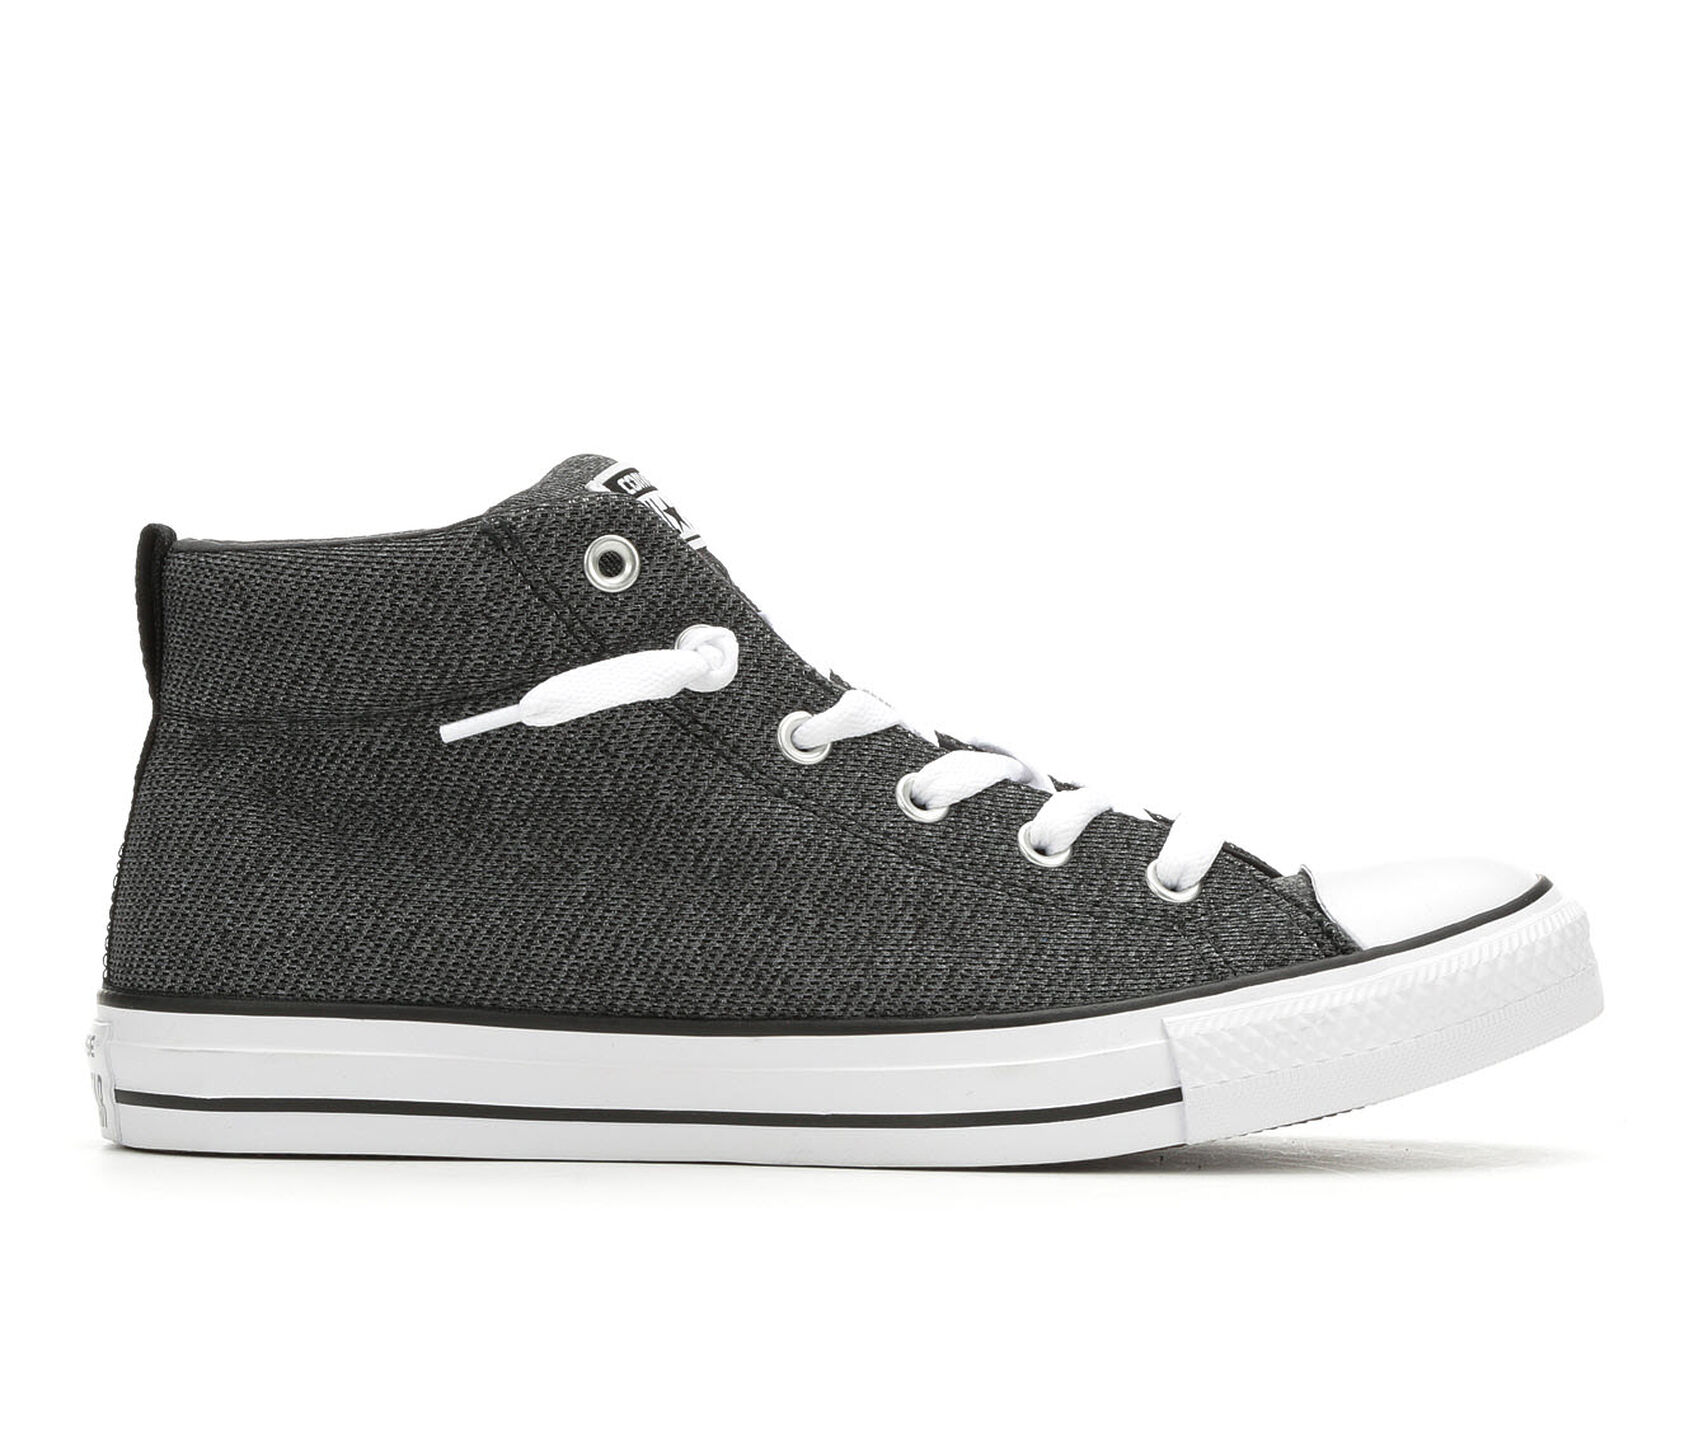 7b984295ed9c ... Converse Chuck Taylor All Star Street Mid Knit Sneakers. Previous